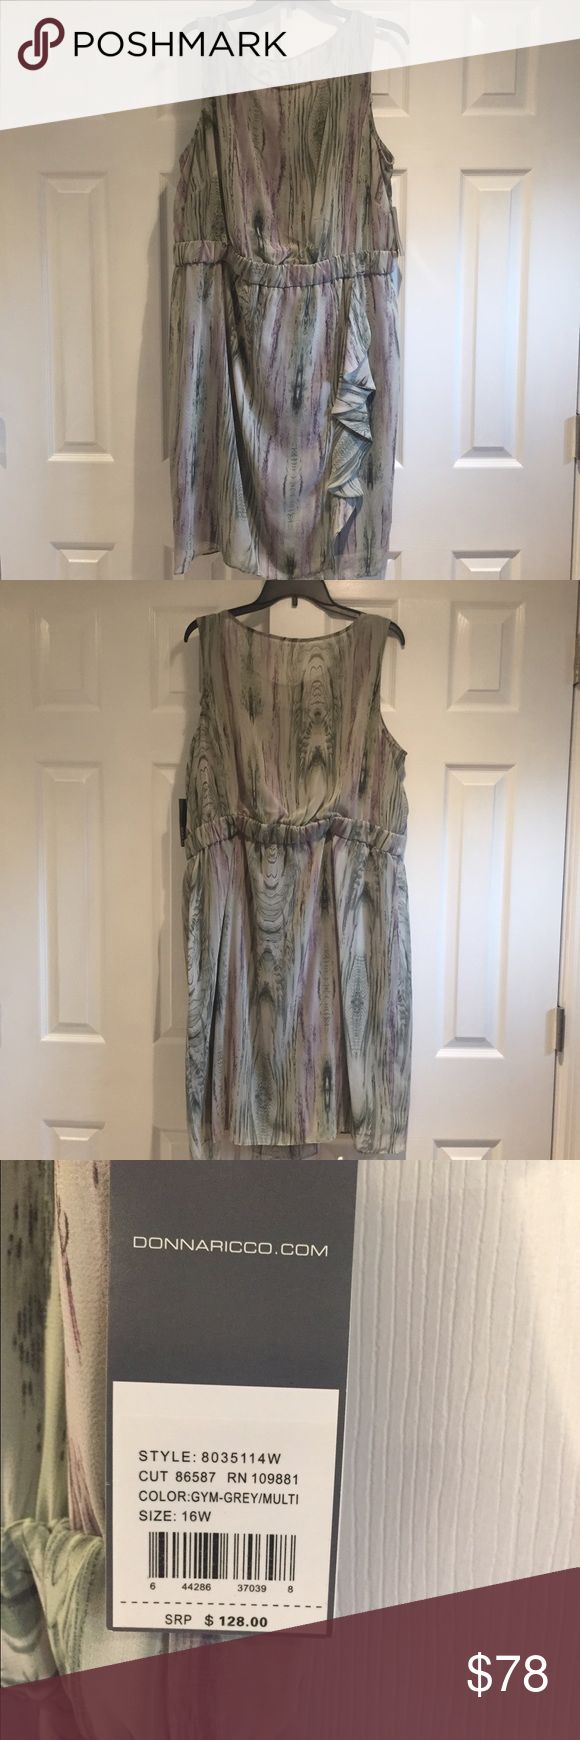 Donna Ricco dress Muted green, purple and gray patterned dress. Cinched, elastic waist with cascading front panel Donna Ricco Dresses